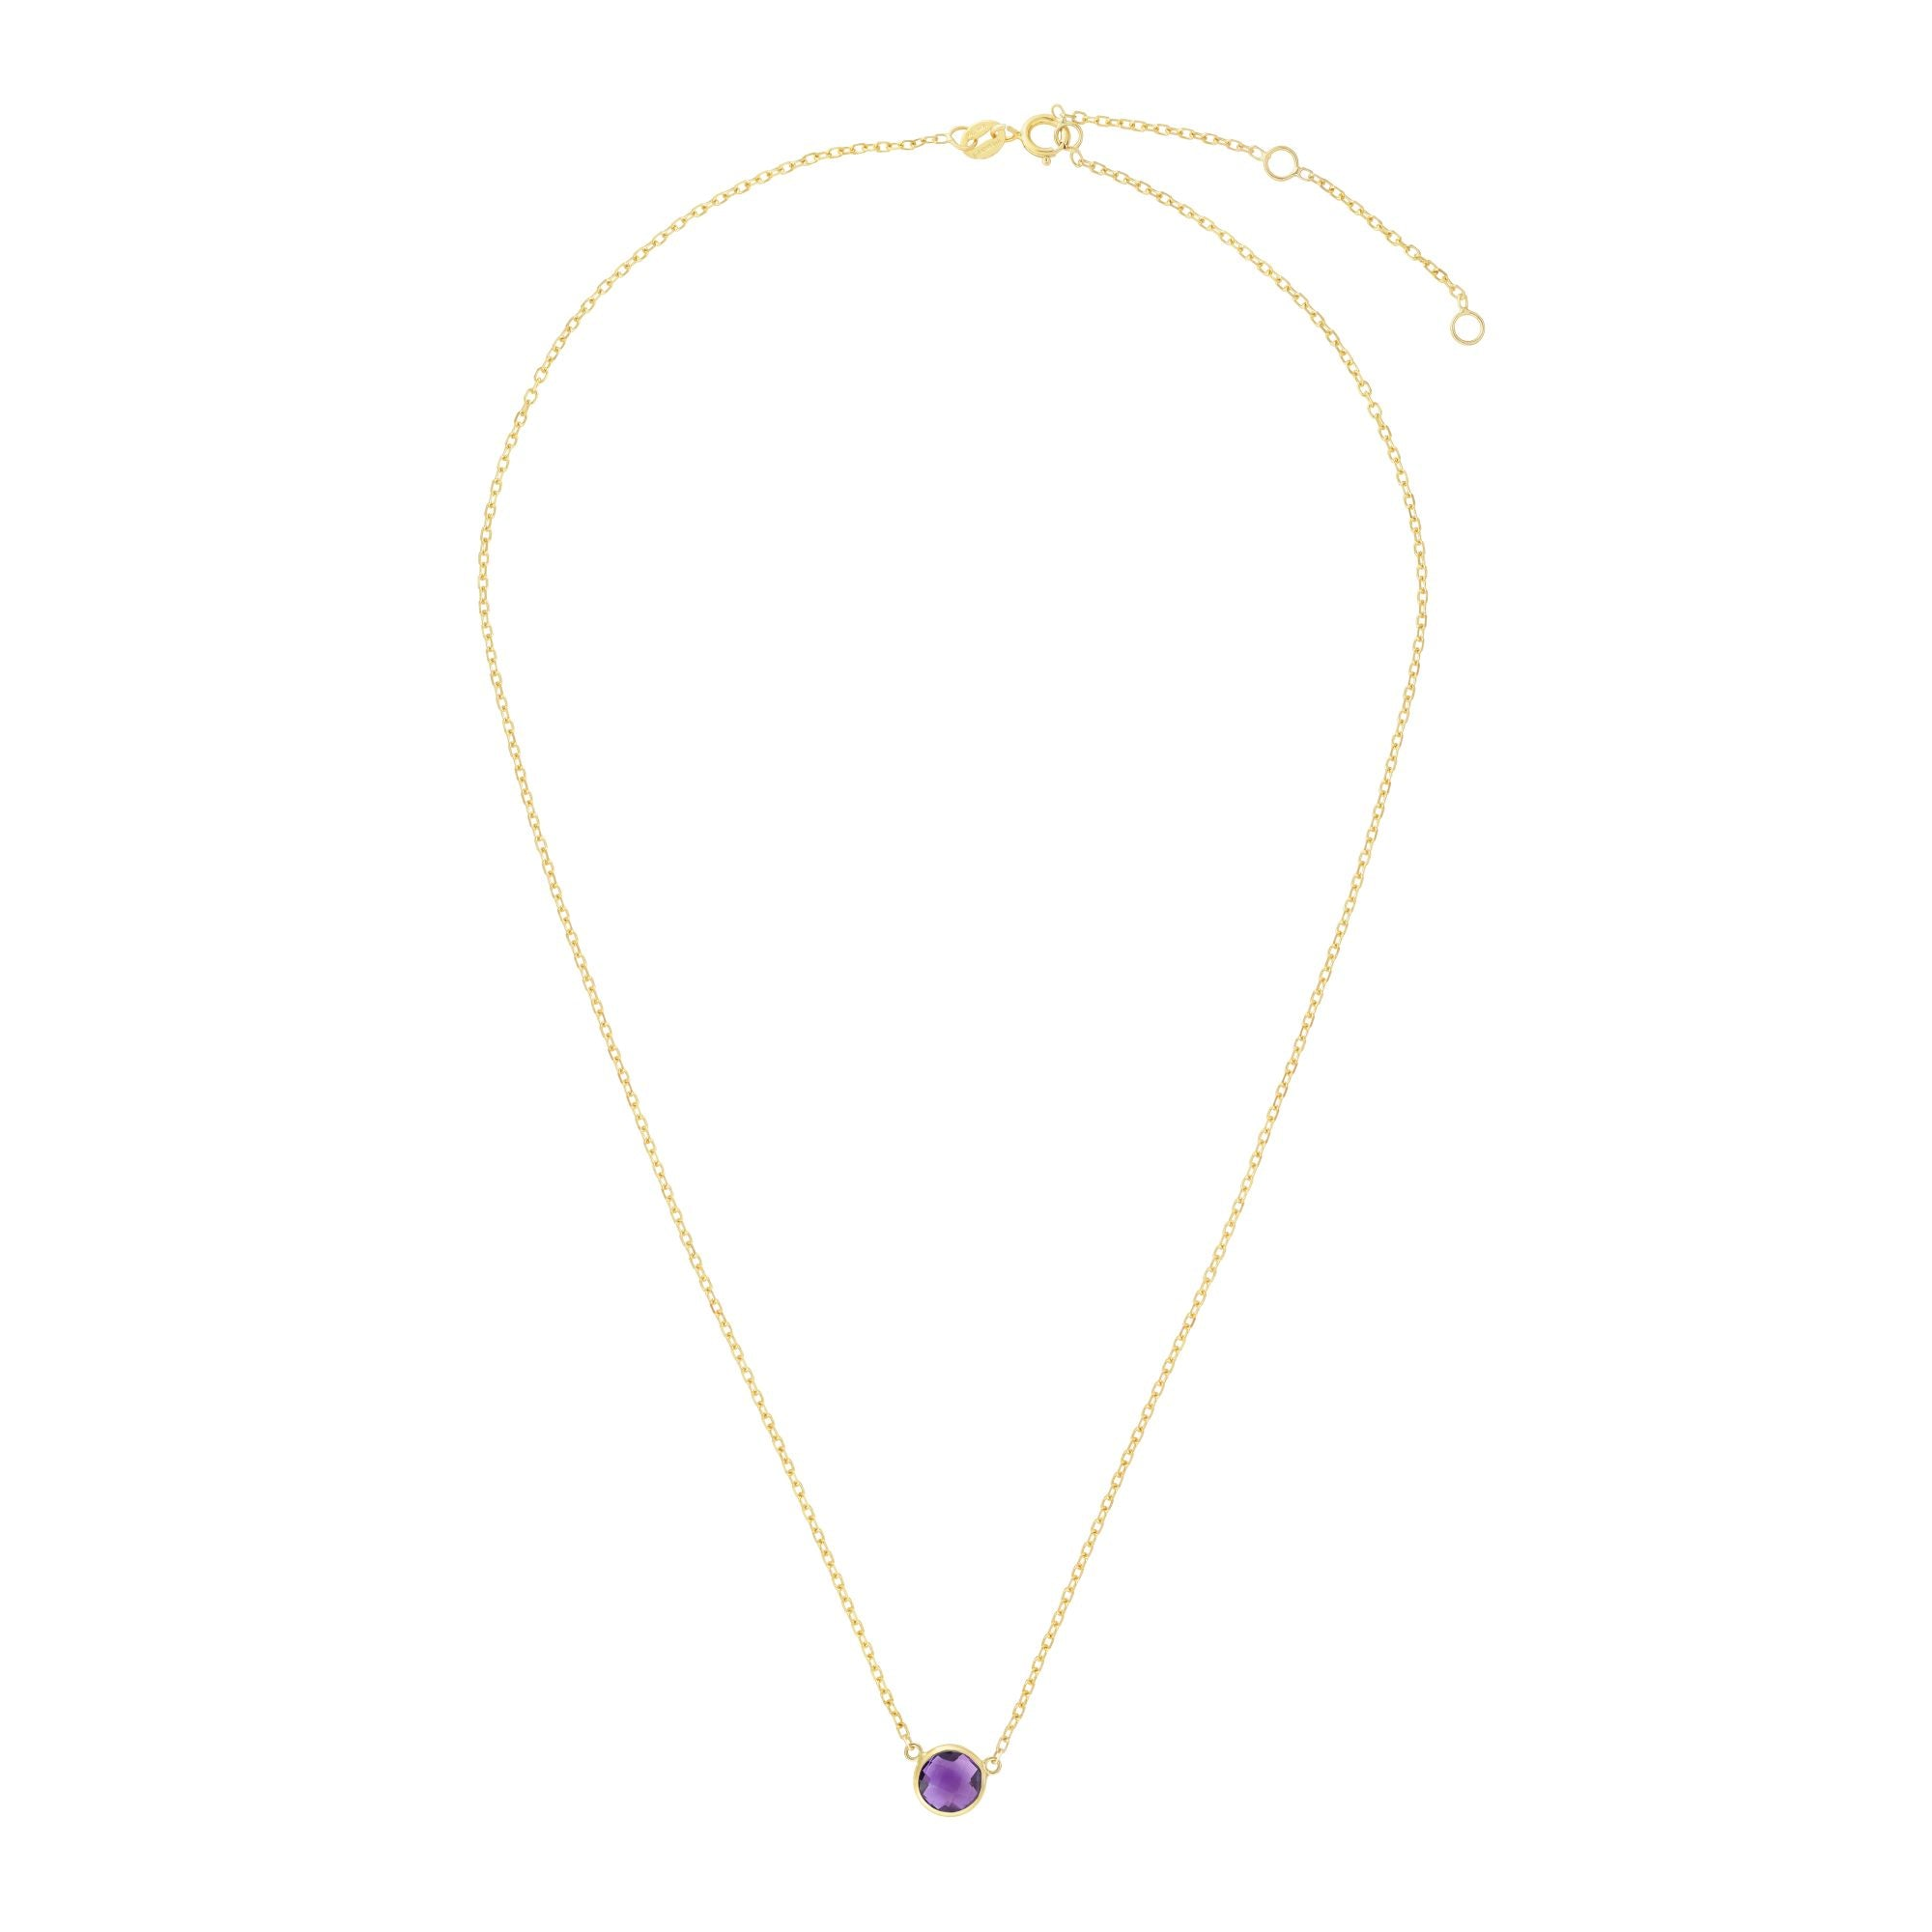 14K Gold & Amethyst Solitaire Necklace